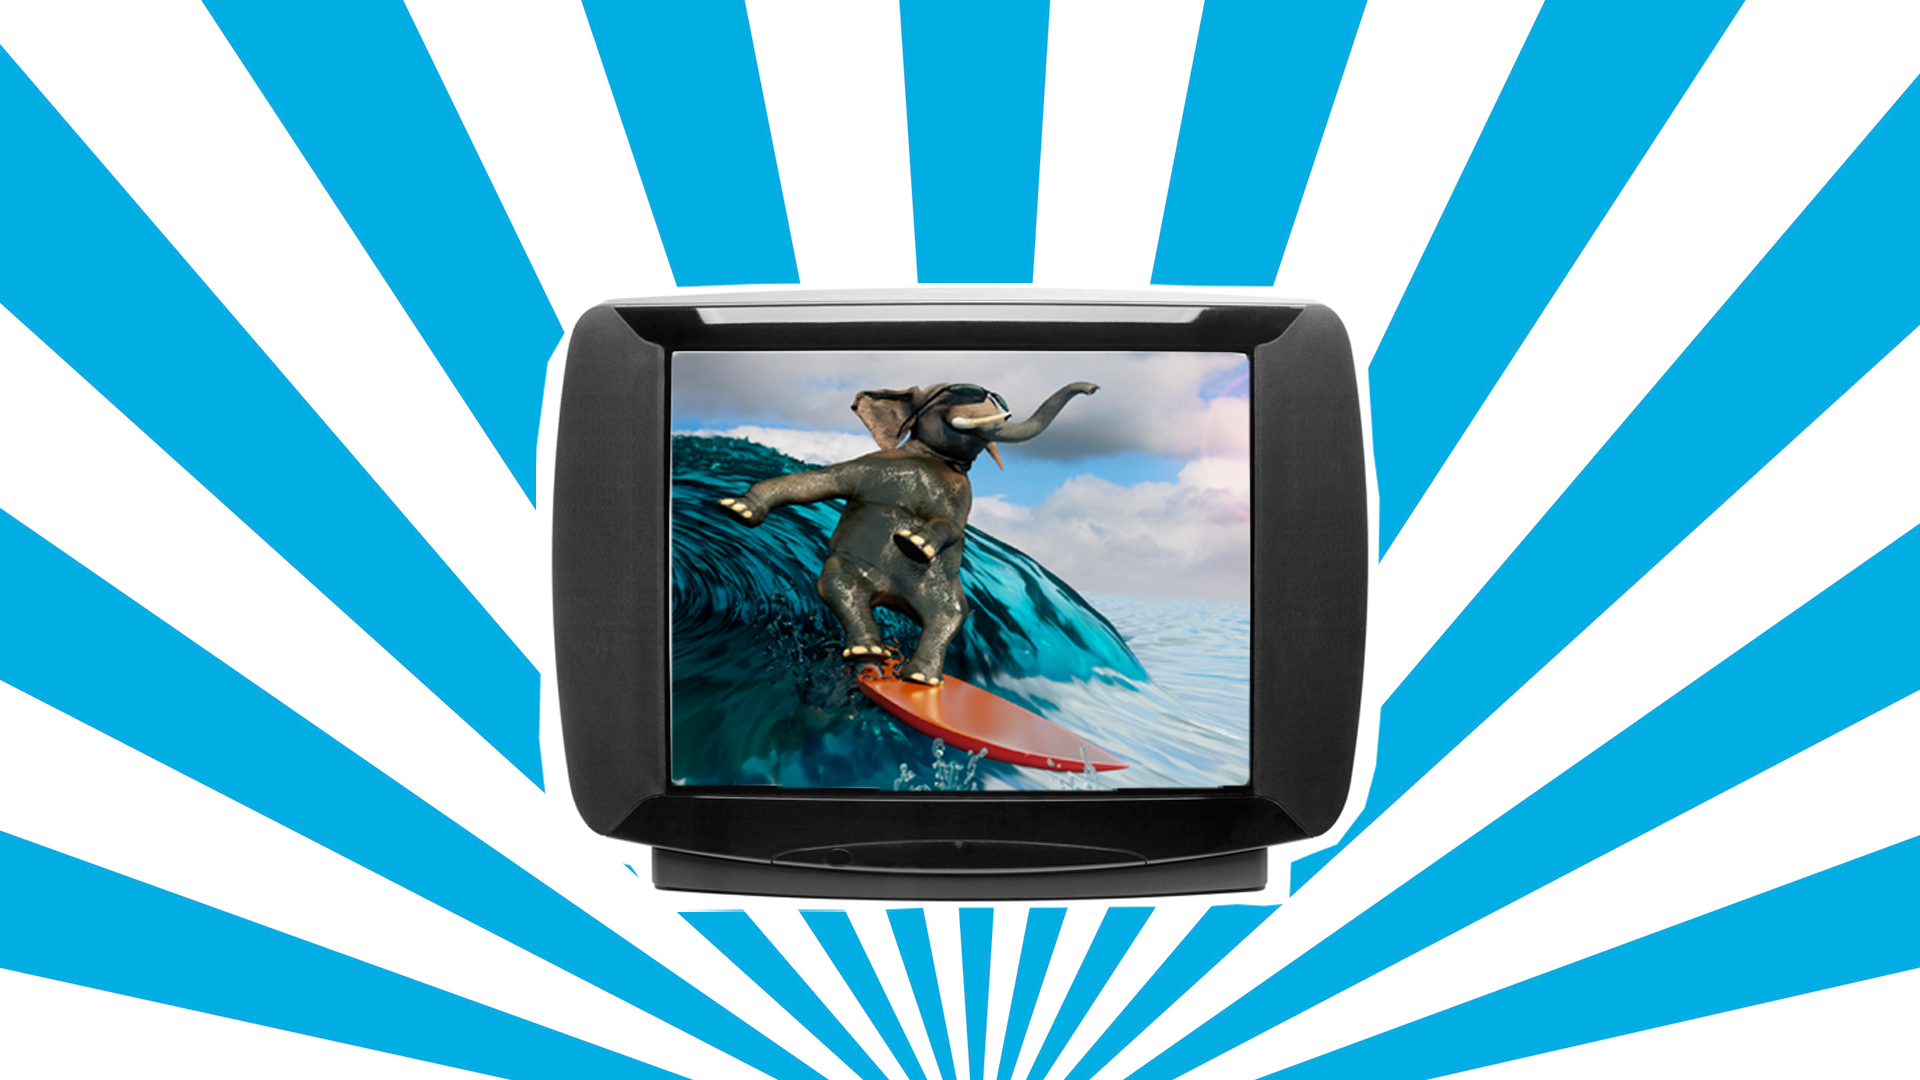 TV screen showing an elephant surfing